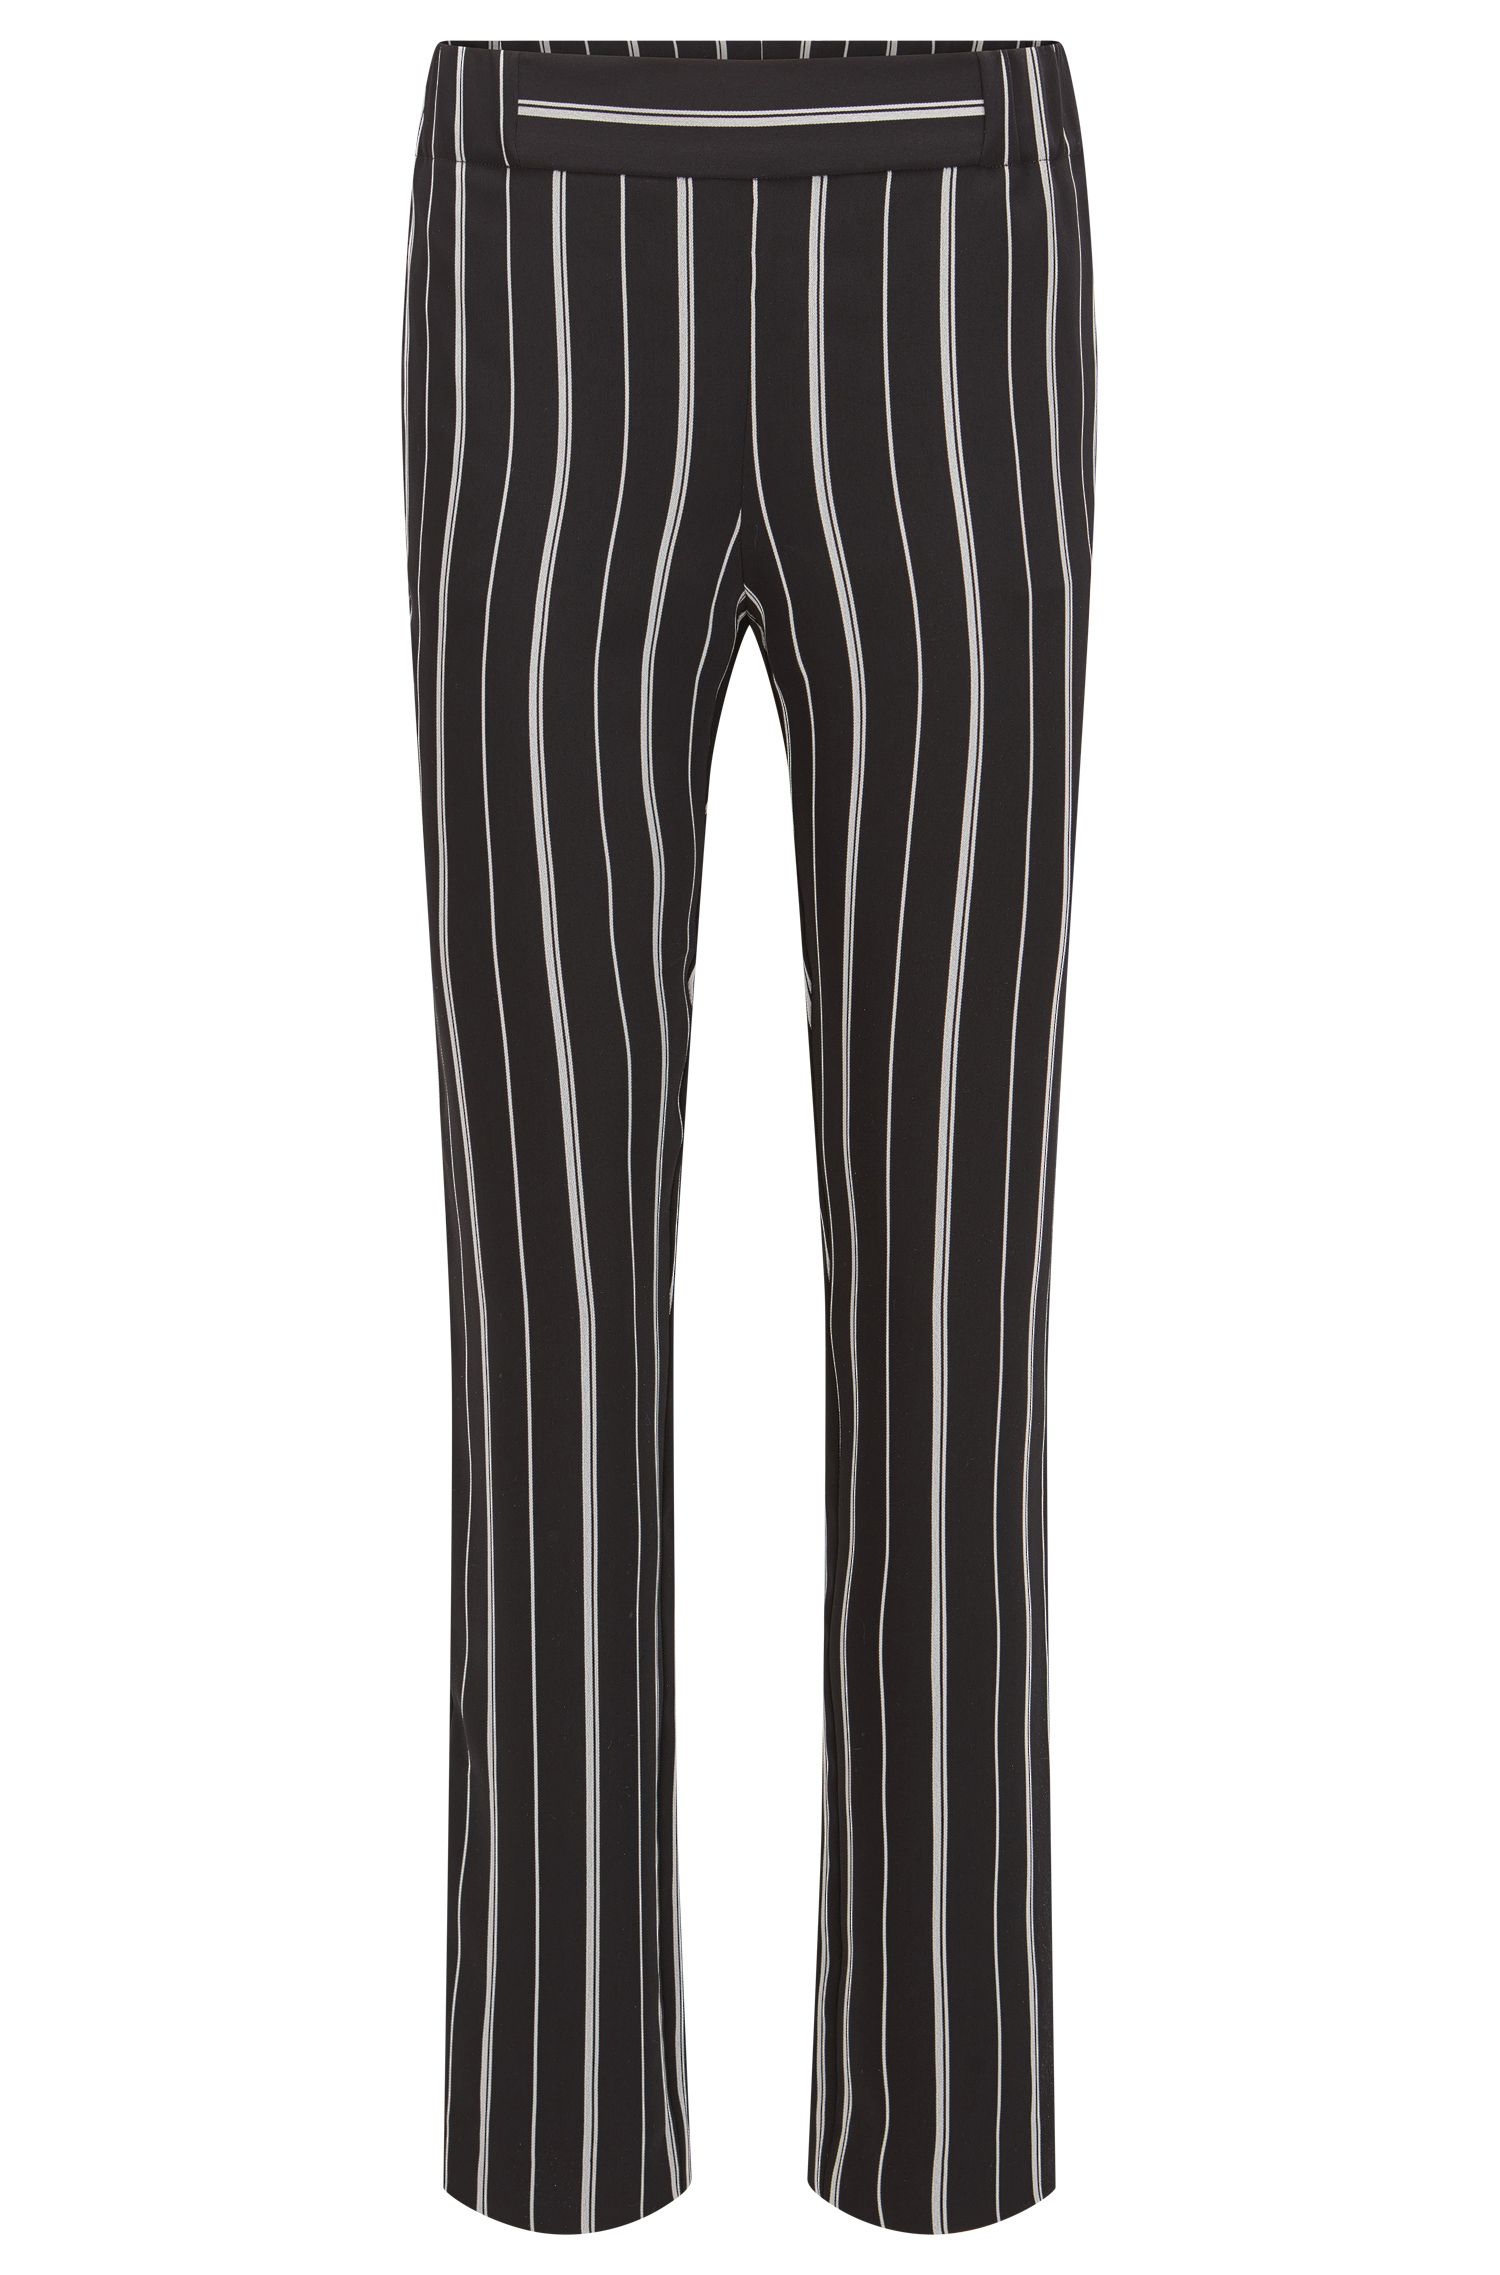 Striped jersey trousers in a regular fit